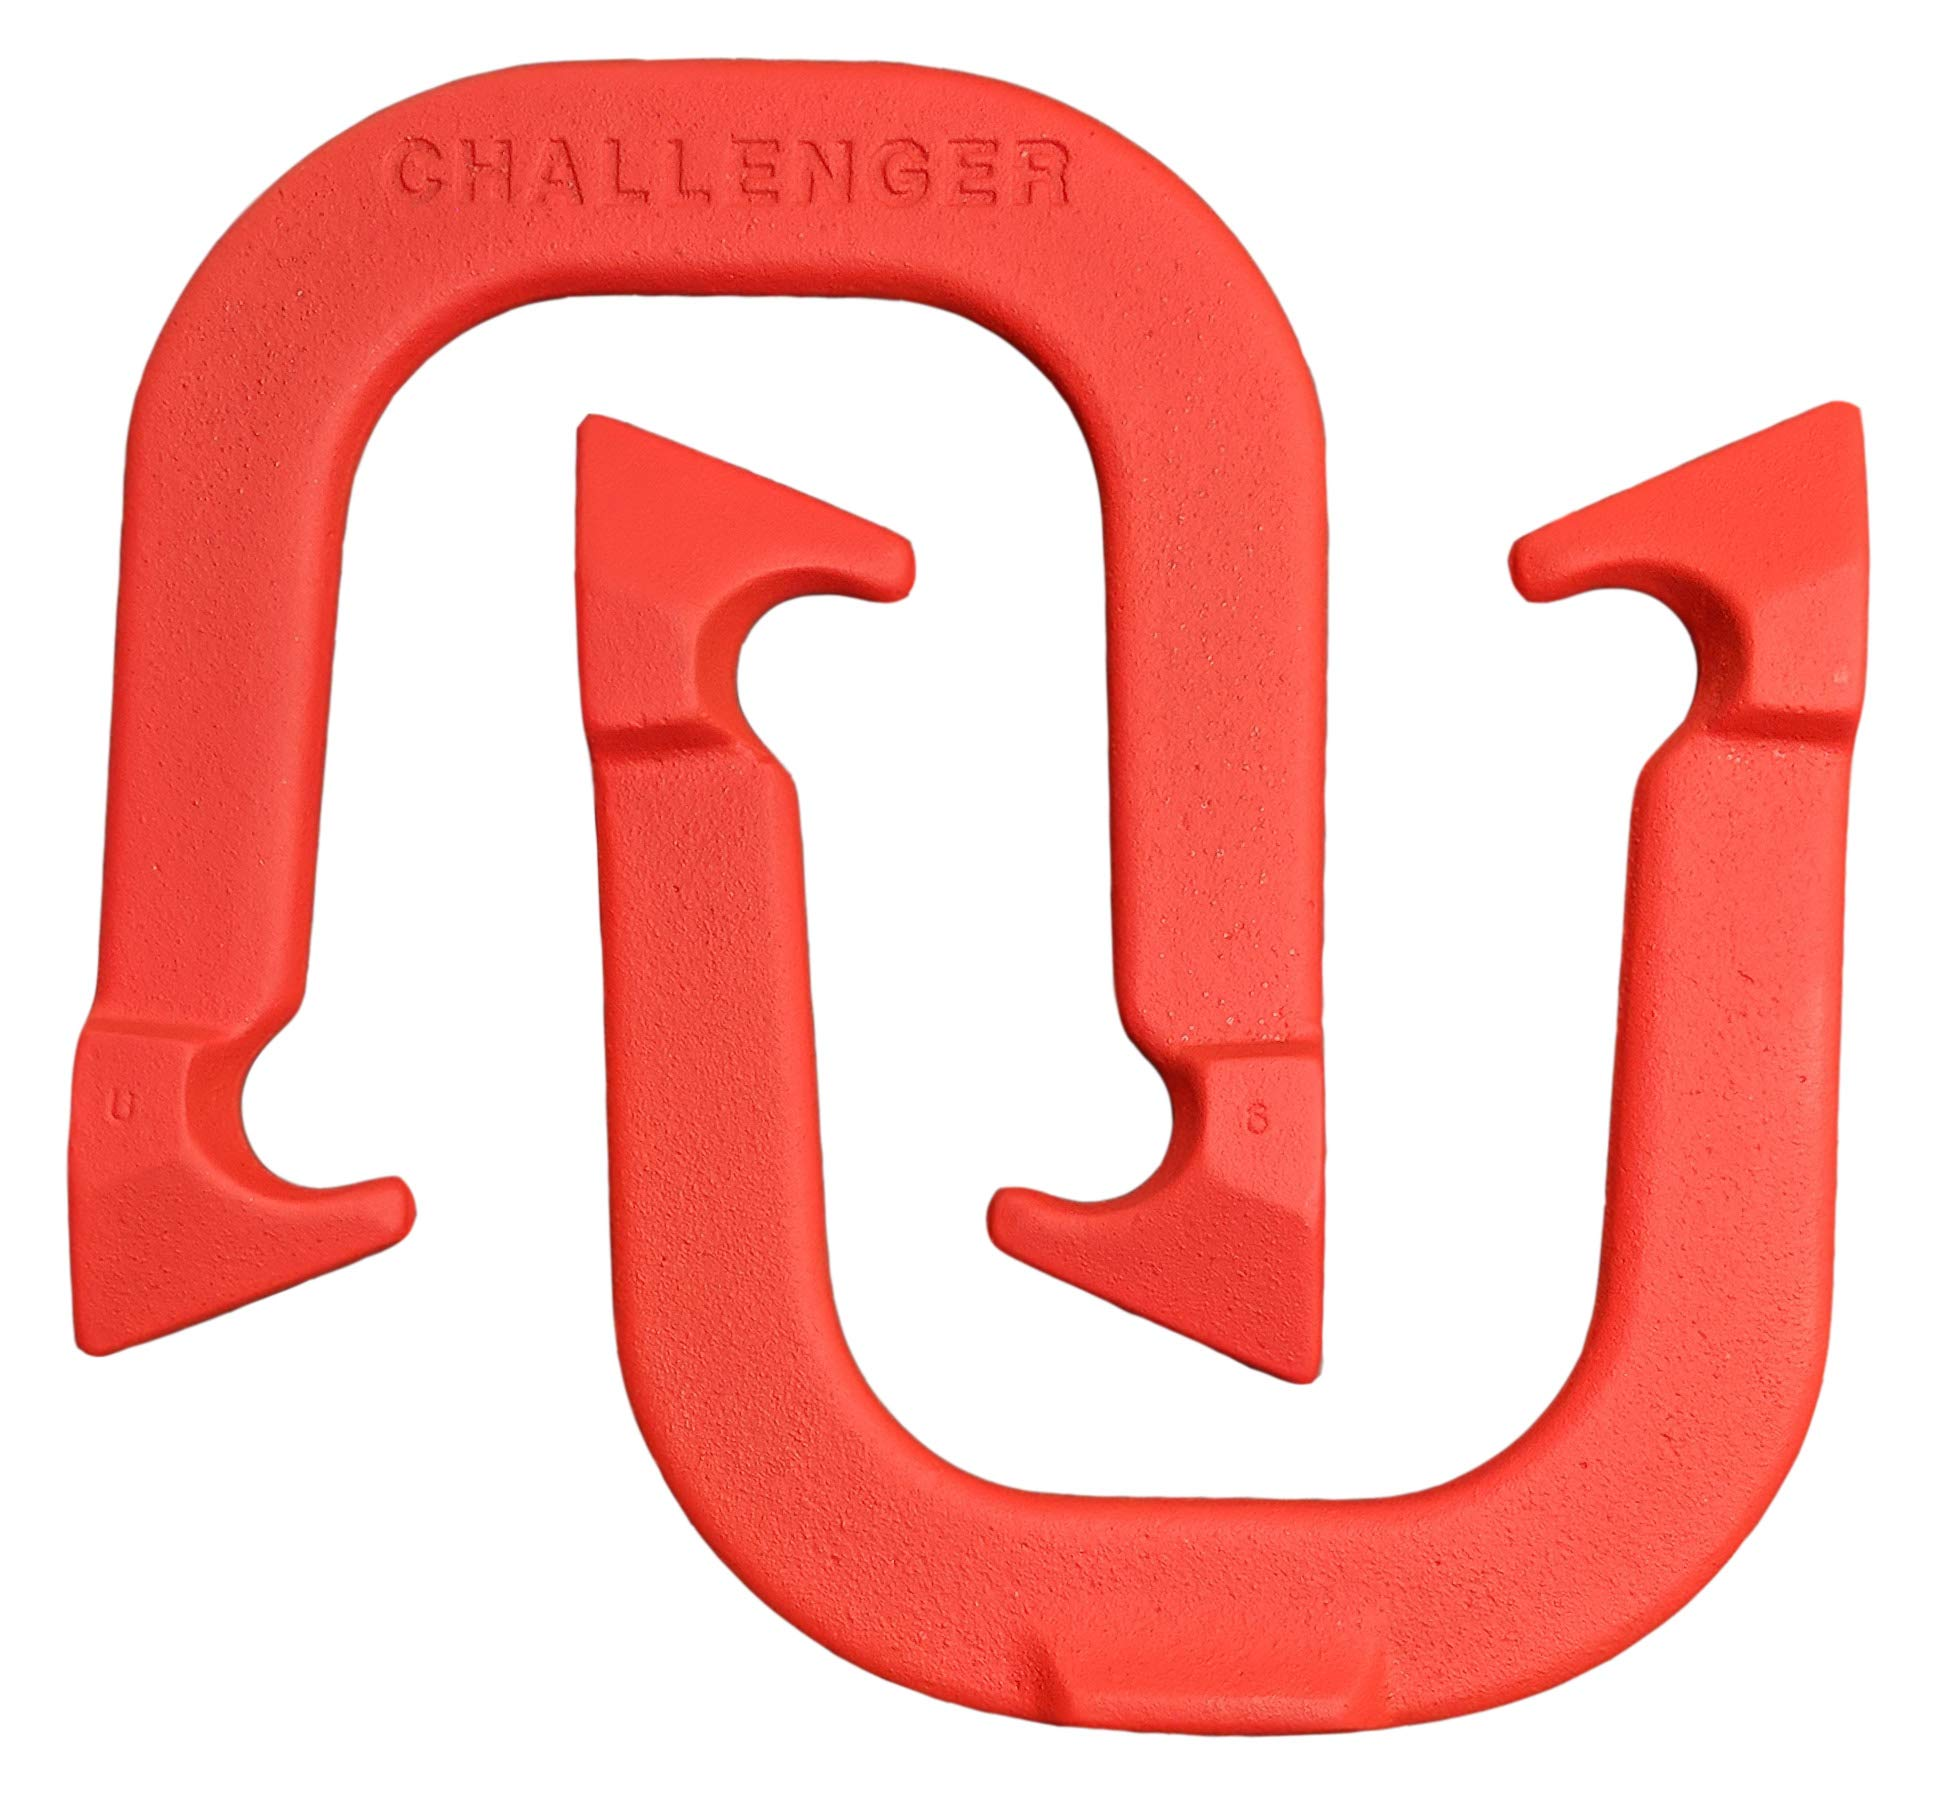 Challenger Professional Pitching Horseshoes- Made in USA (Red- Single Pair (2 Shoes)) by Thoroughbred Horseshoes